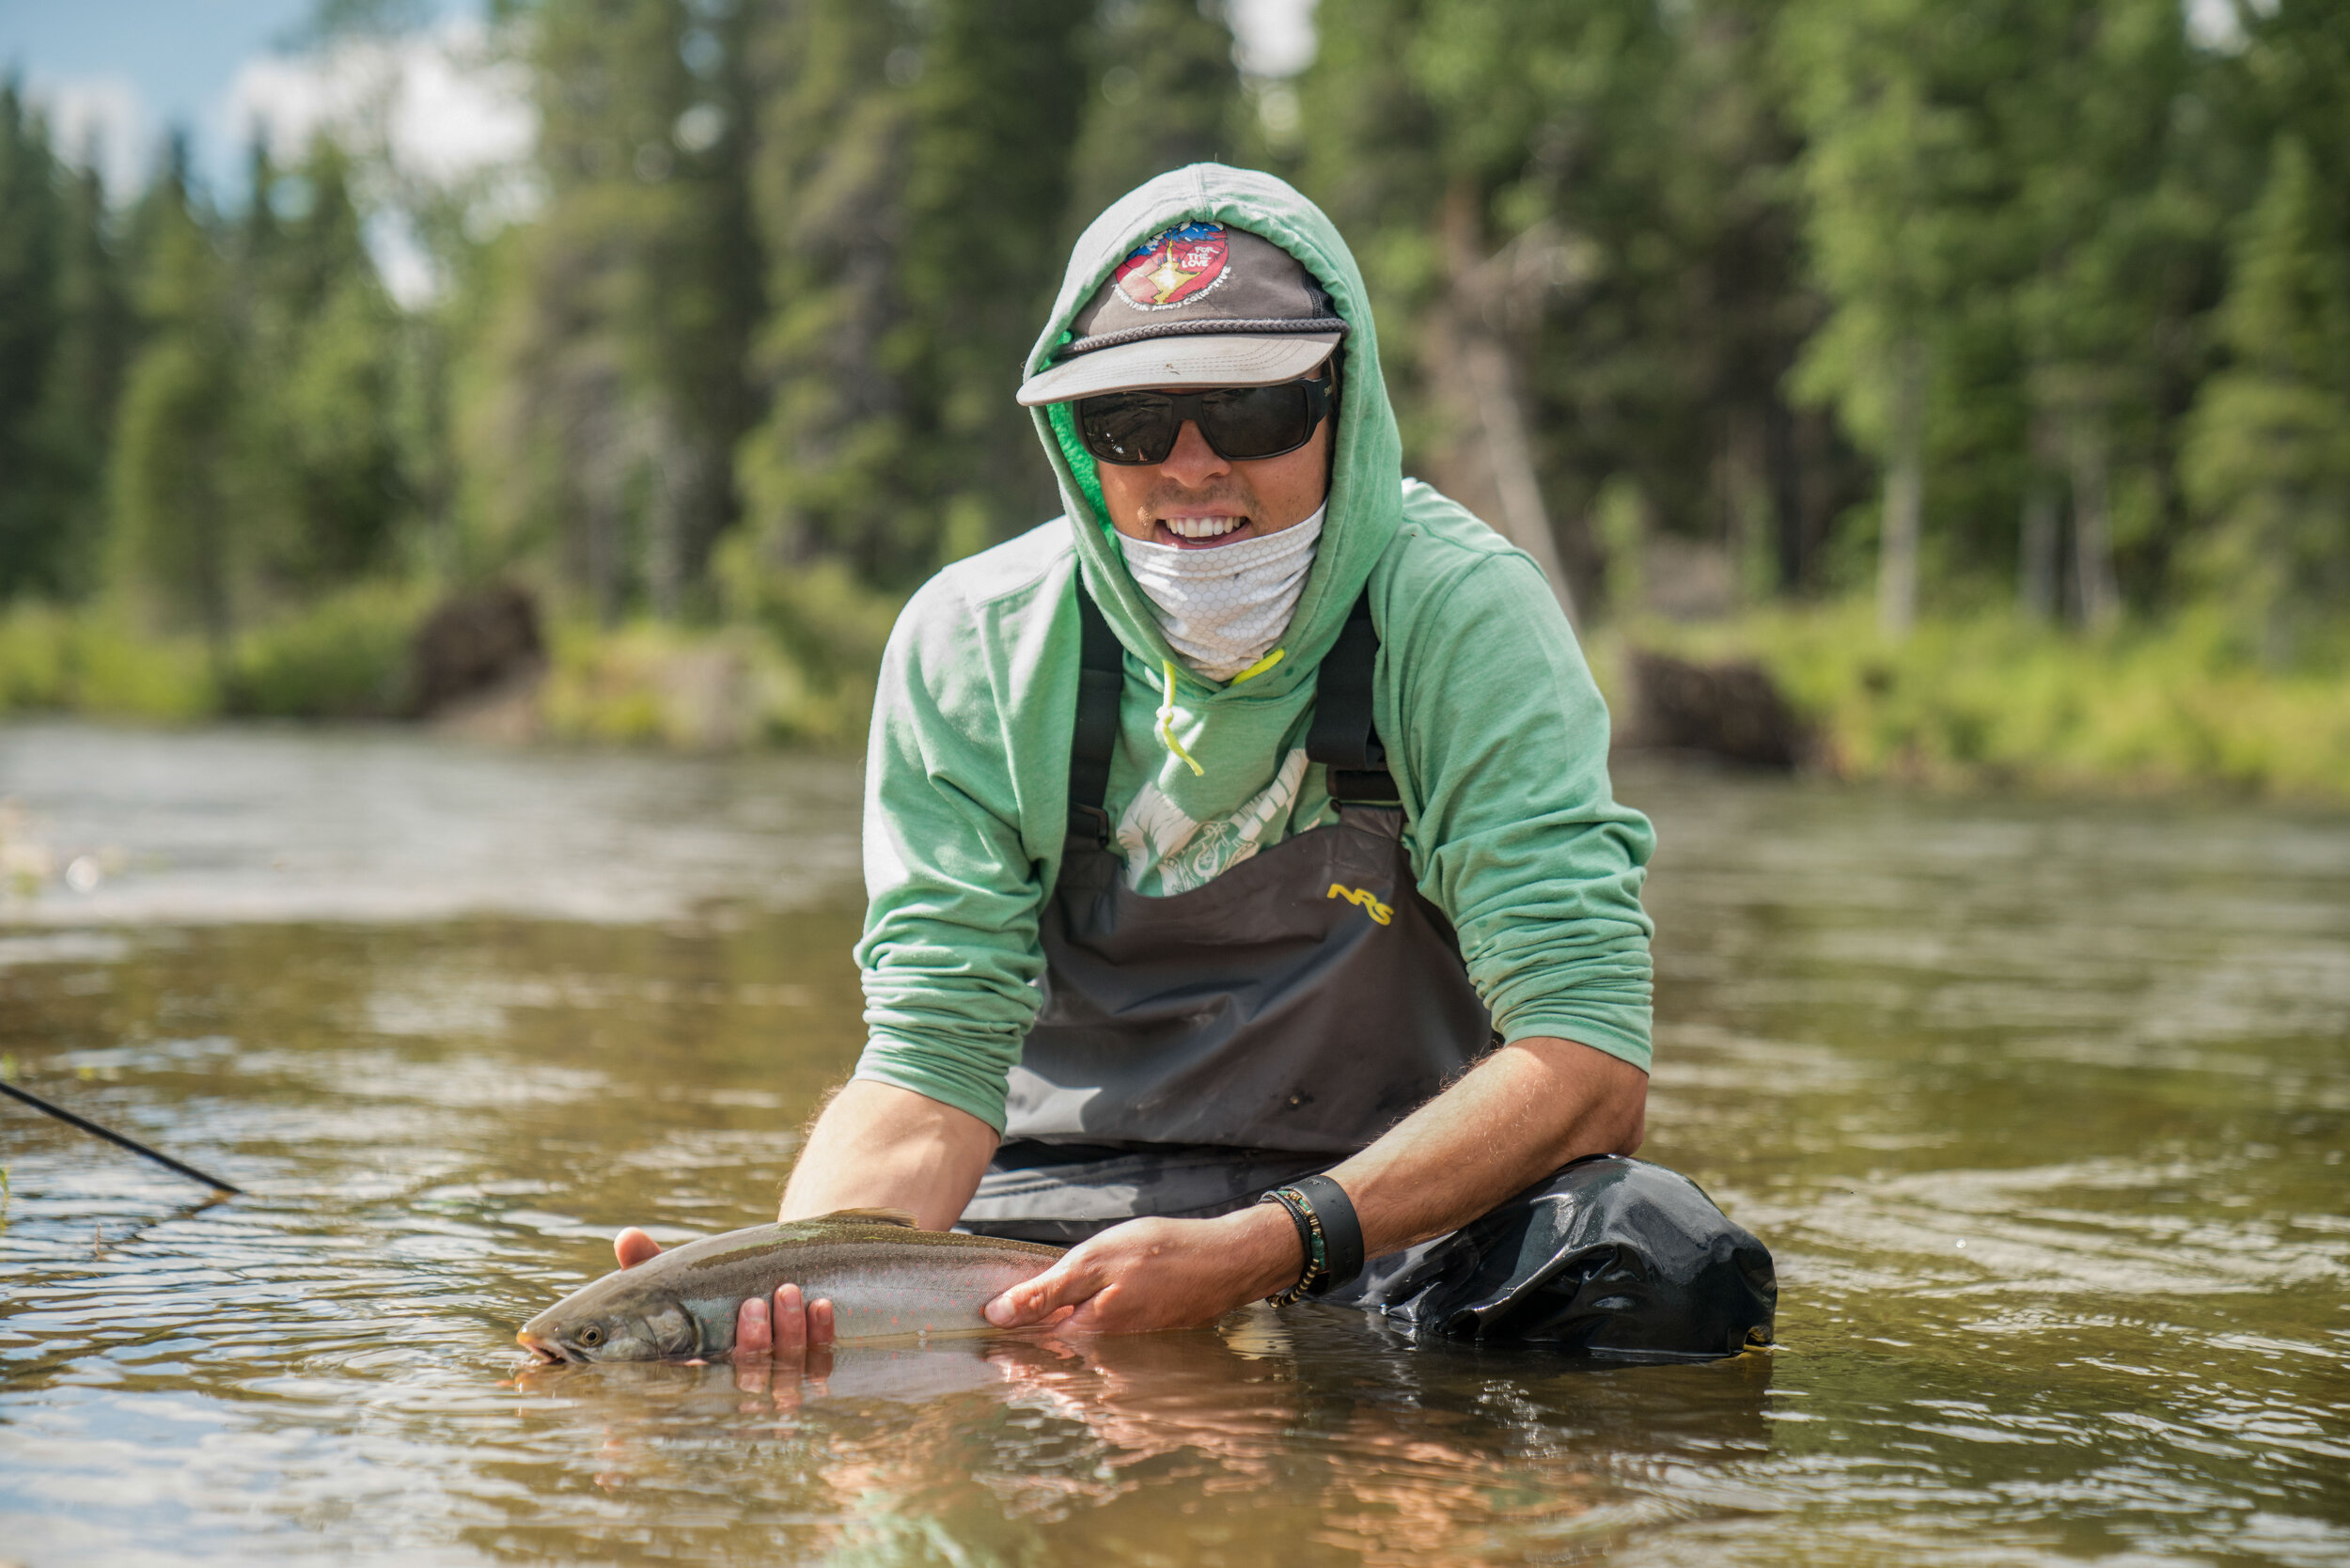 """Bristol Bay Ambassador, Brendan Wells, produced the film """"Koktuli Wild"""" showcasing the region and the impacts the proposed Pebble mine would have on the sportfishing industry."""